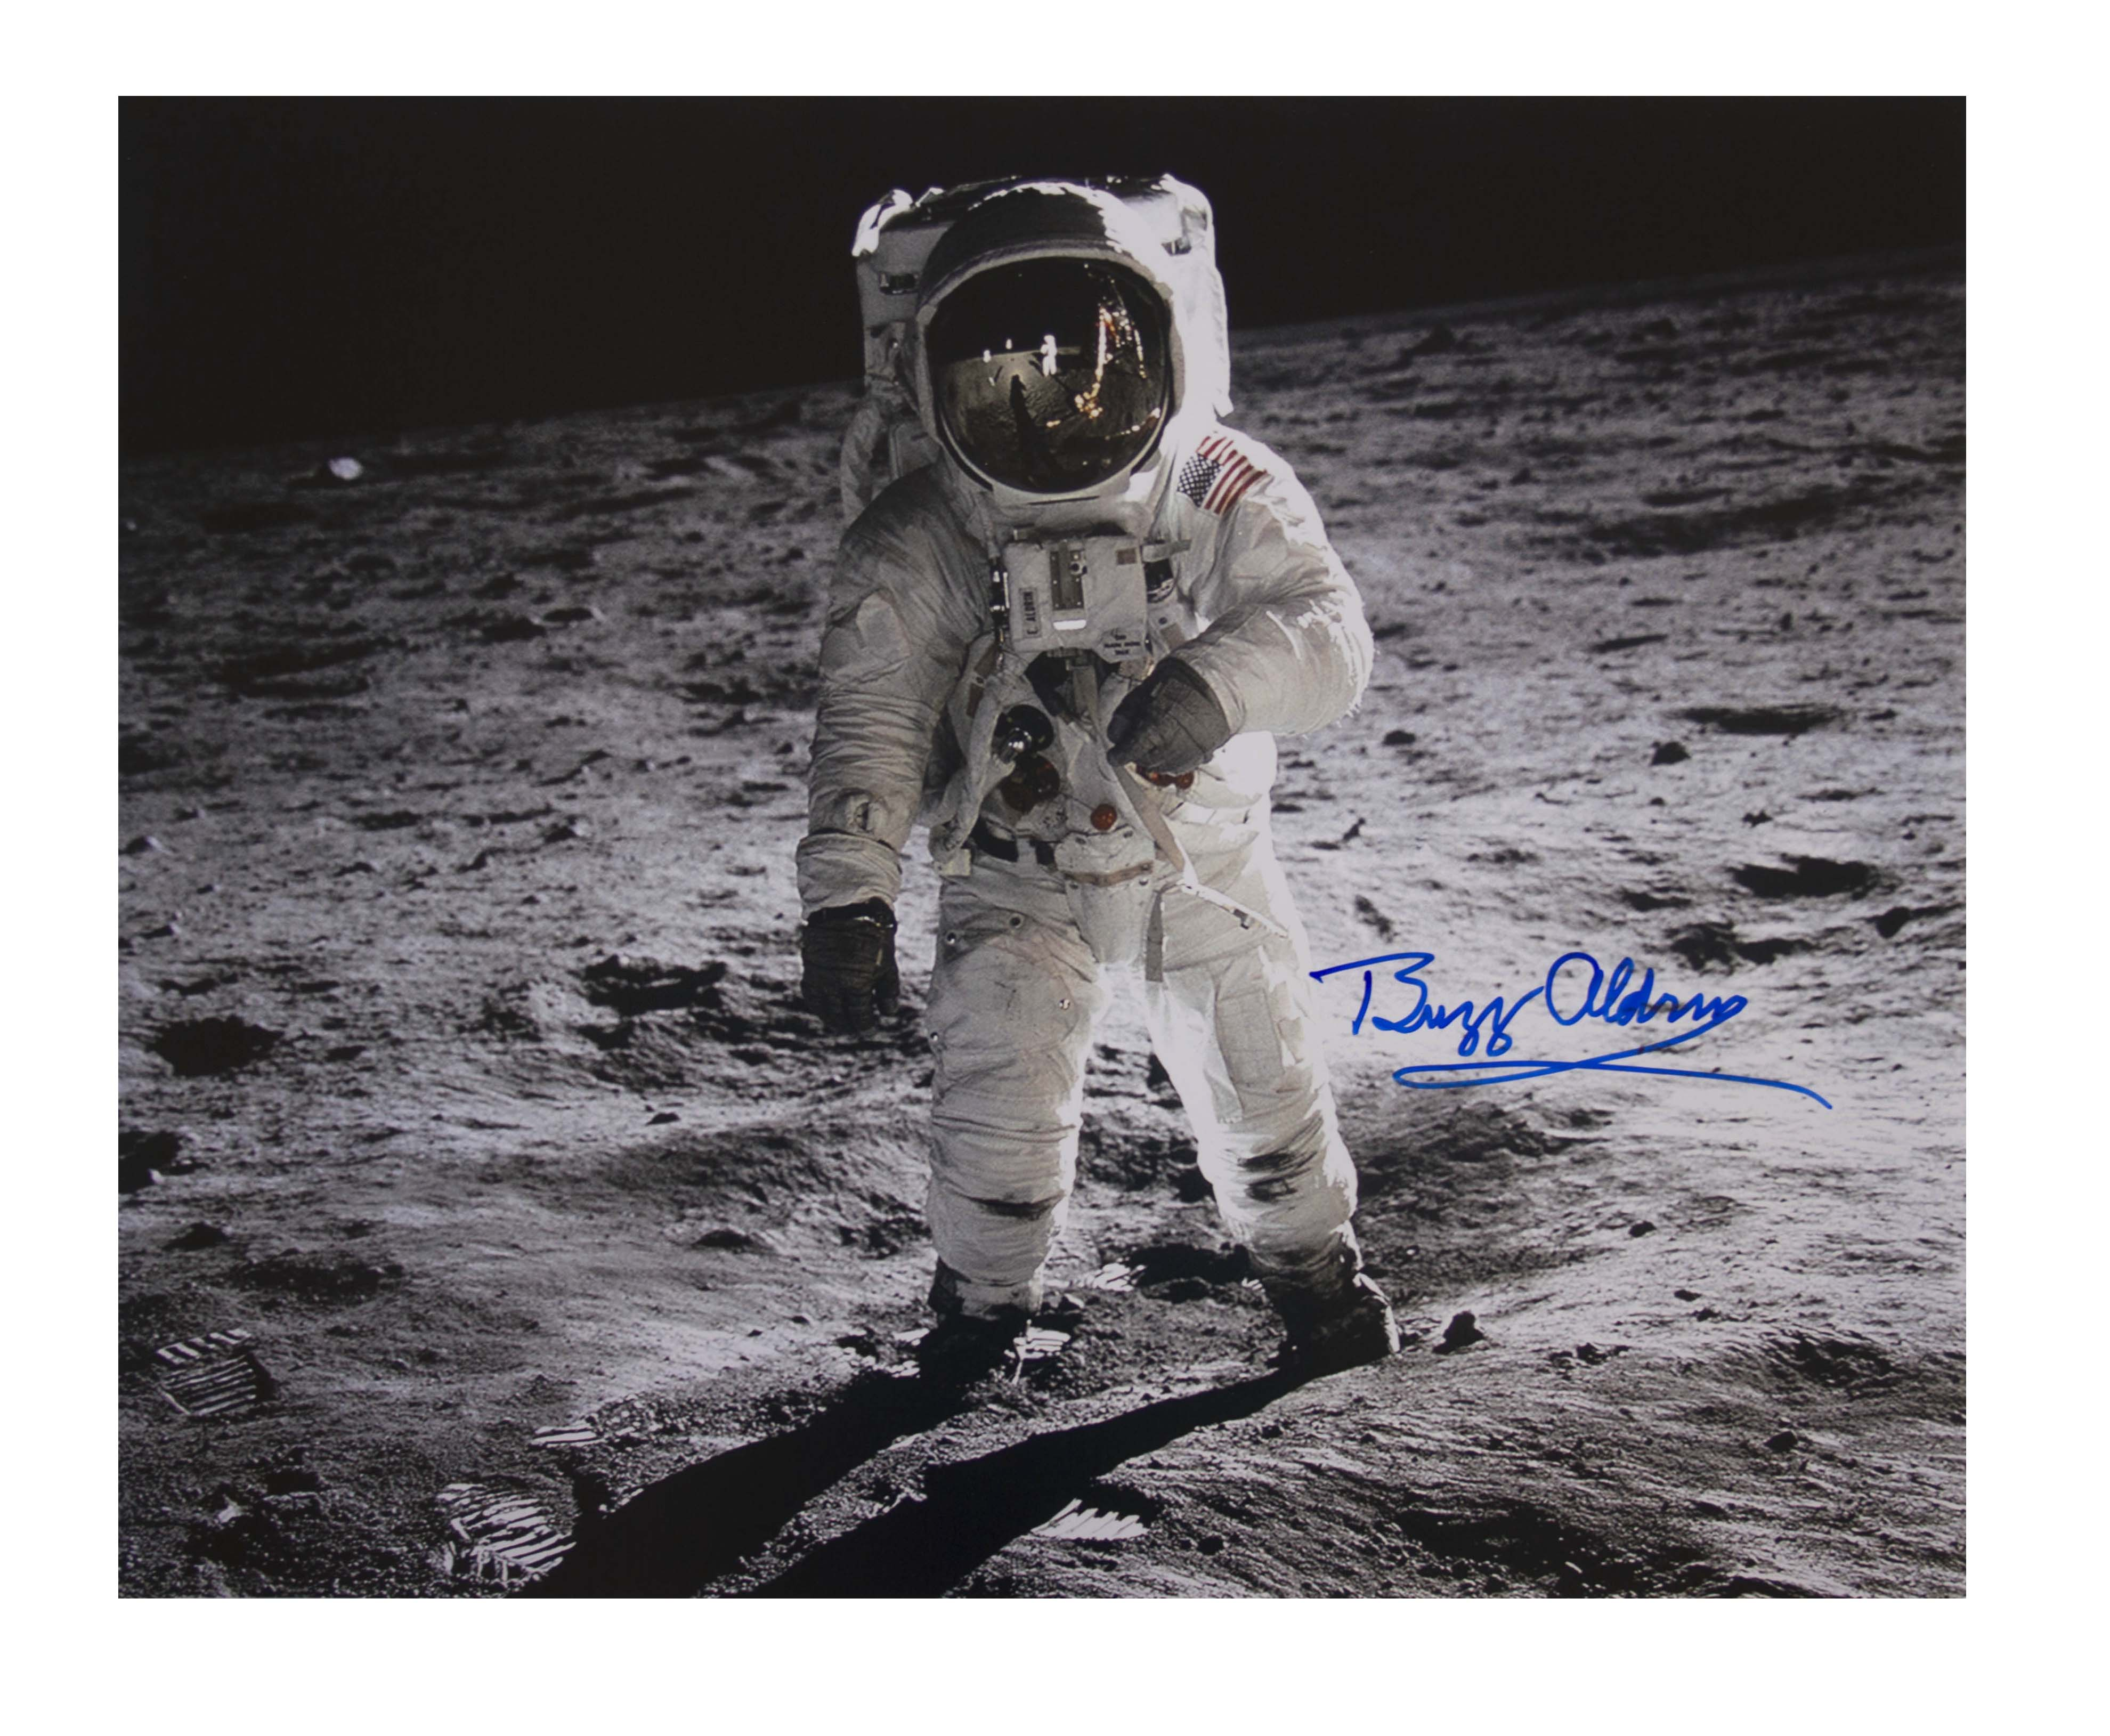 10 amazing facts about the apollo 11 moon landing - HD1500×1200